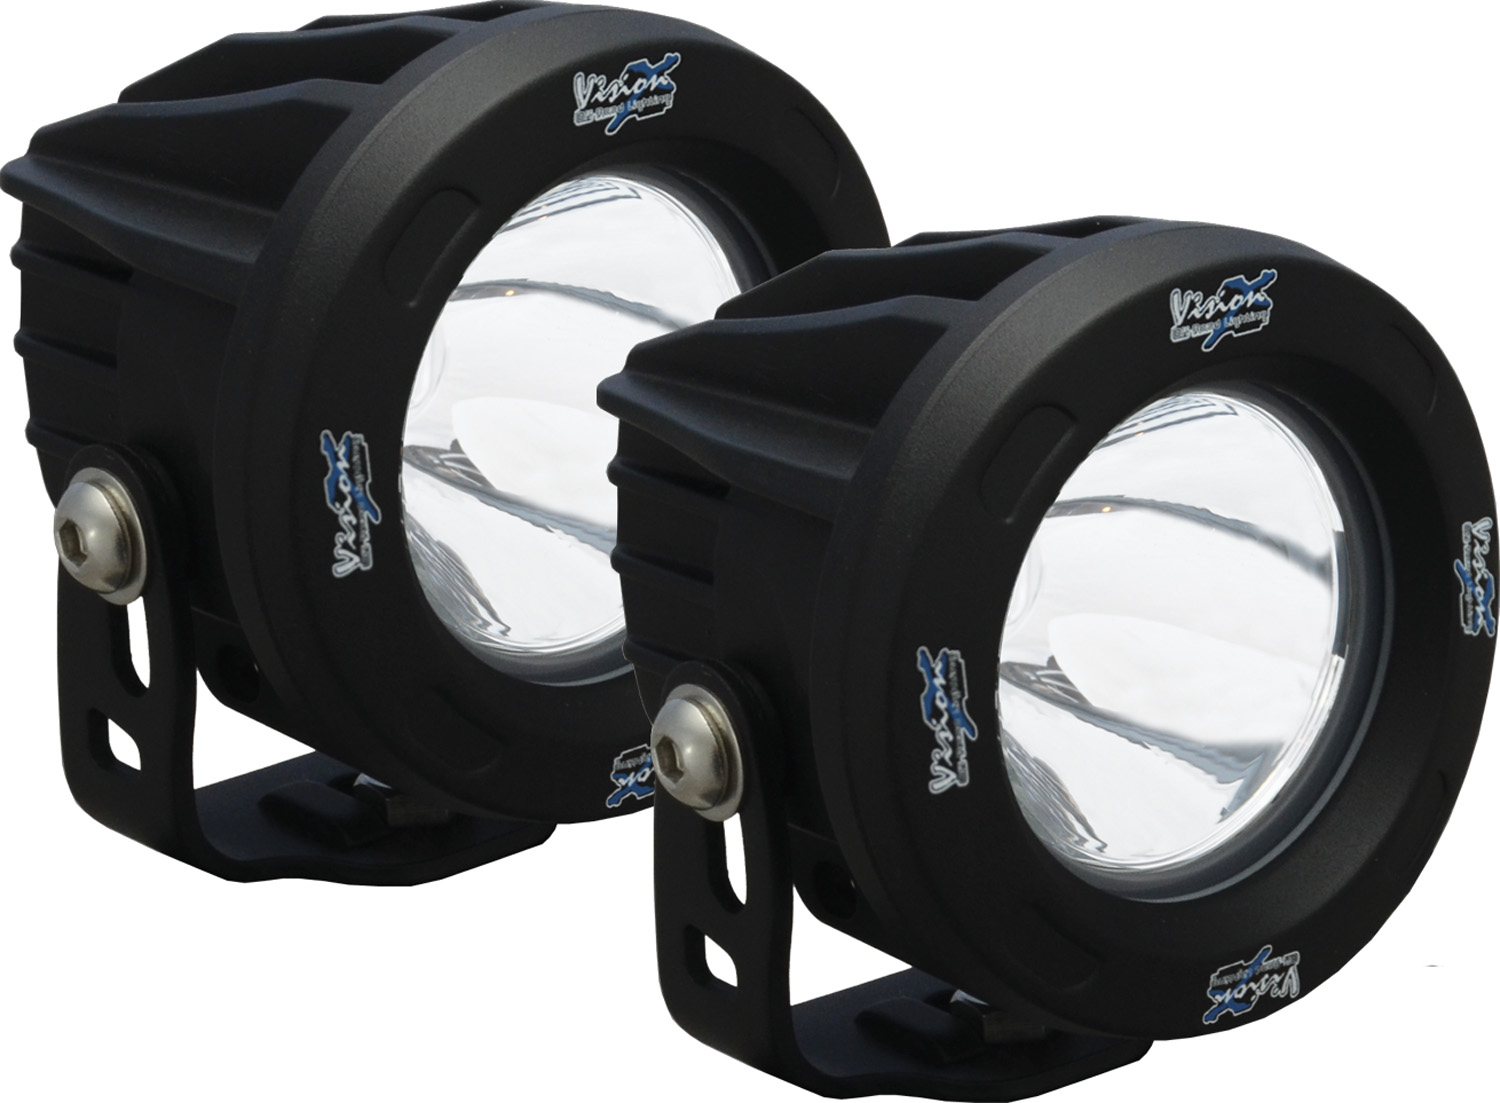 OPTIMUS ROUND BLACK 1 10W LED 10? NARROW KIT OF 2 LIGHTS